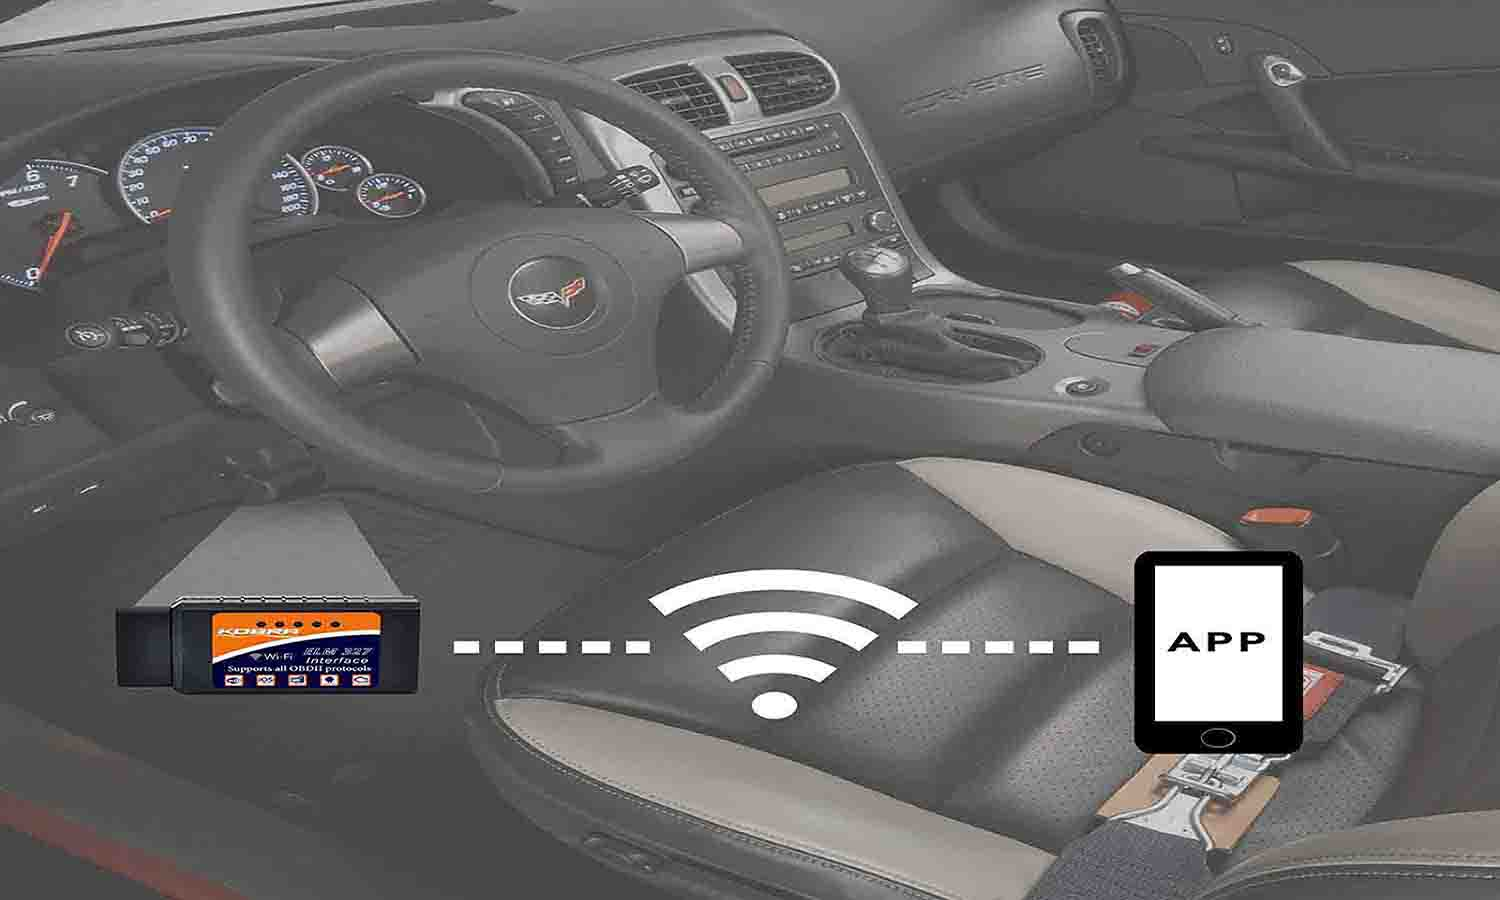 kobra wireless obd2 adapter